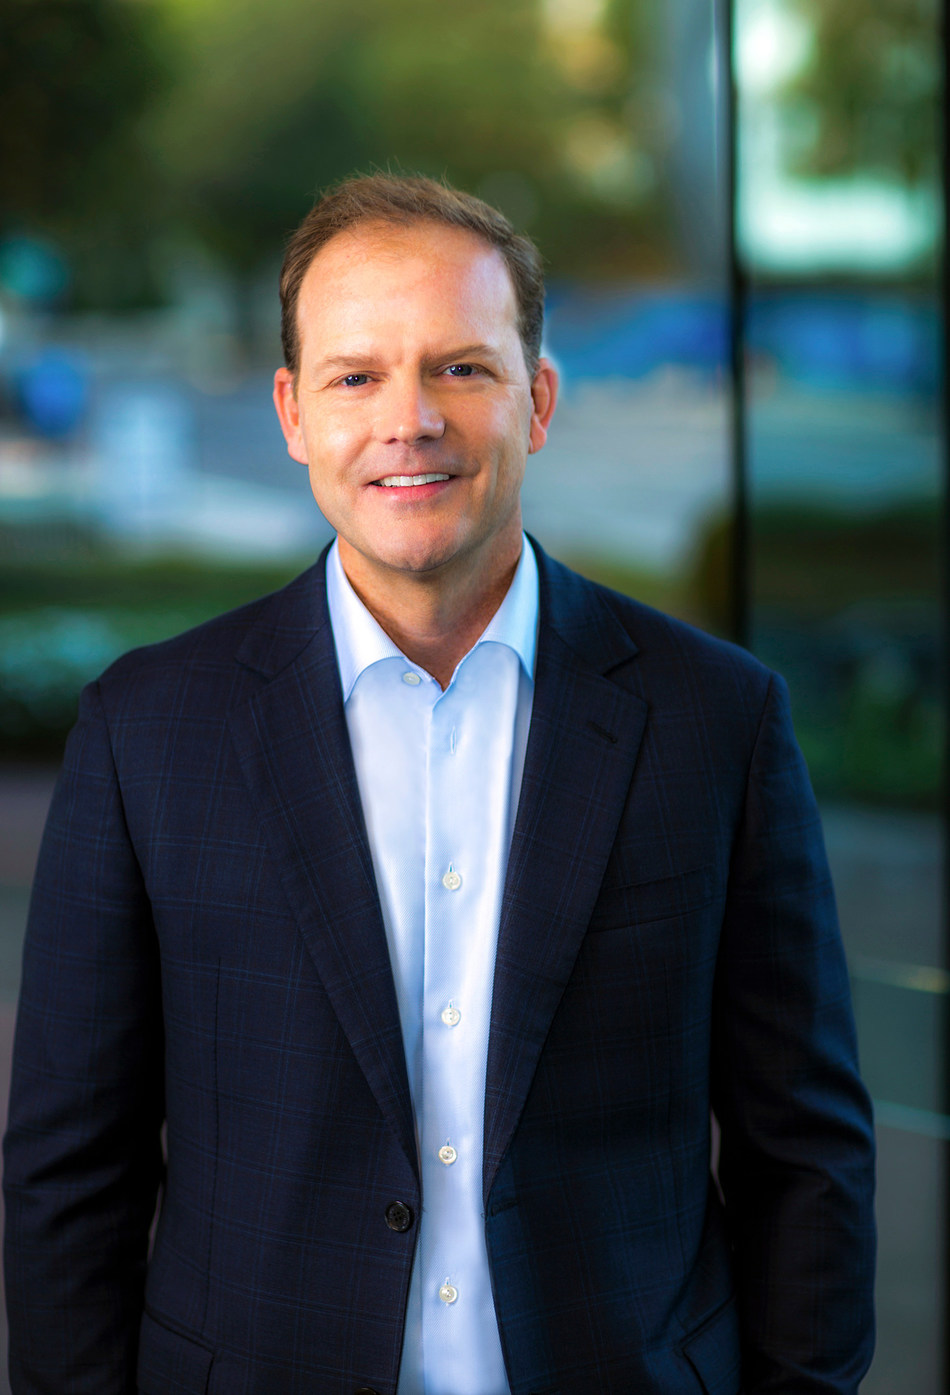 Trey Loughran has been appointed CEO at Purchasing Power, LLC, based in Atlanta. Loughran formerly was president at Bankrate.com and held senior executive roles at Equifax.